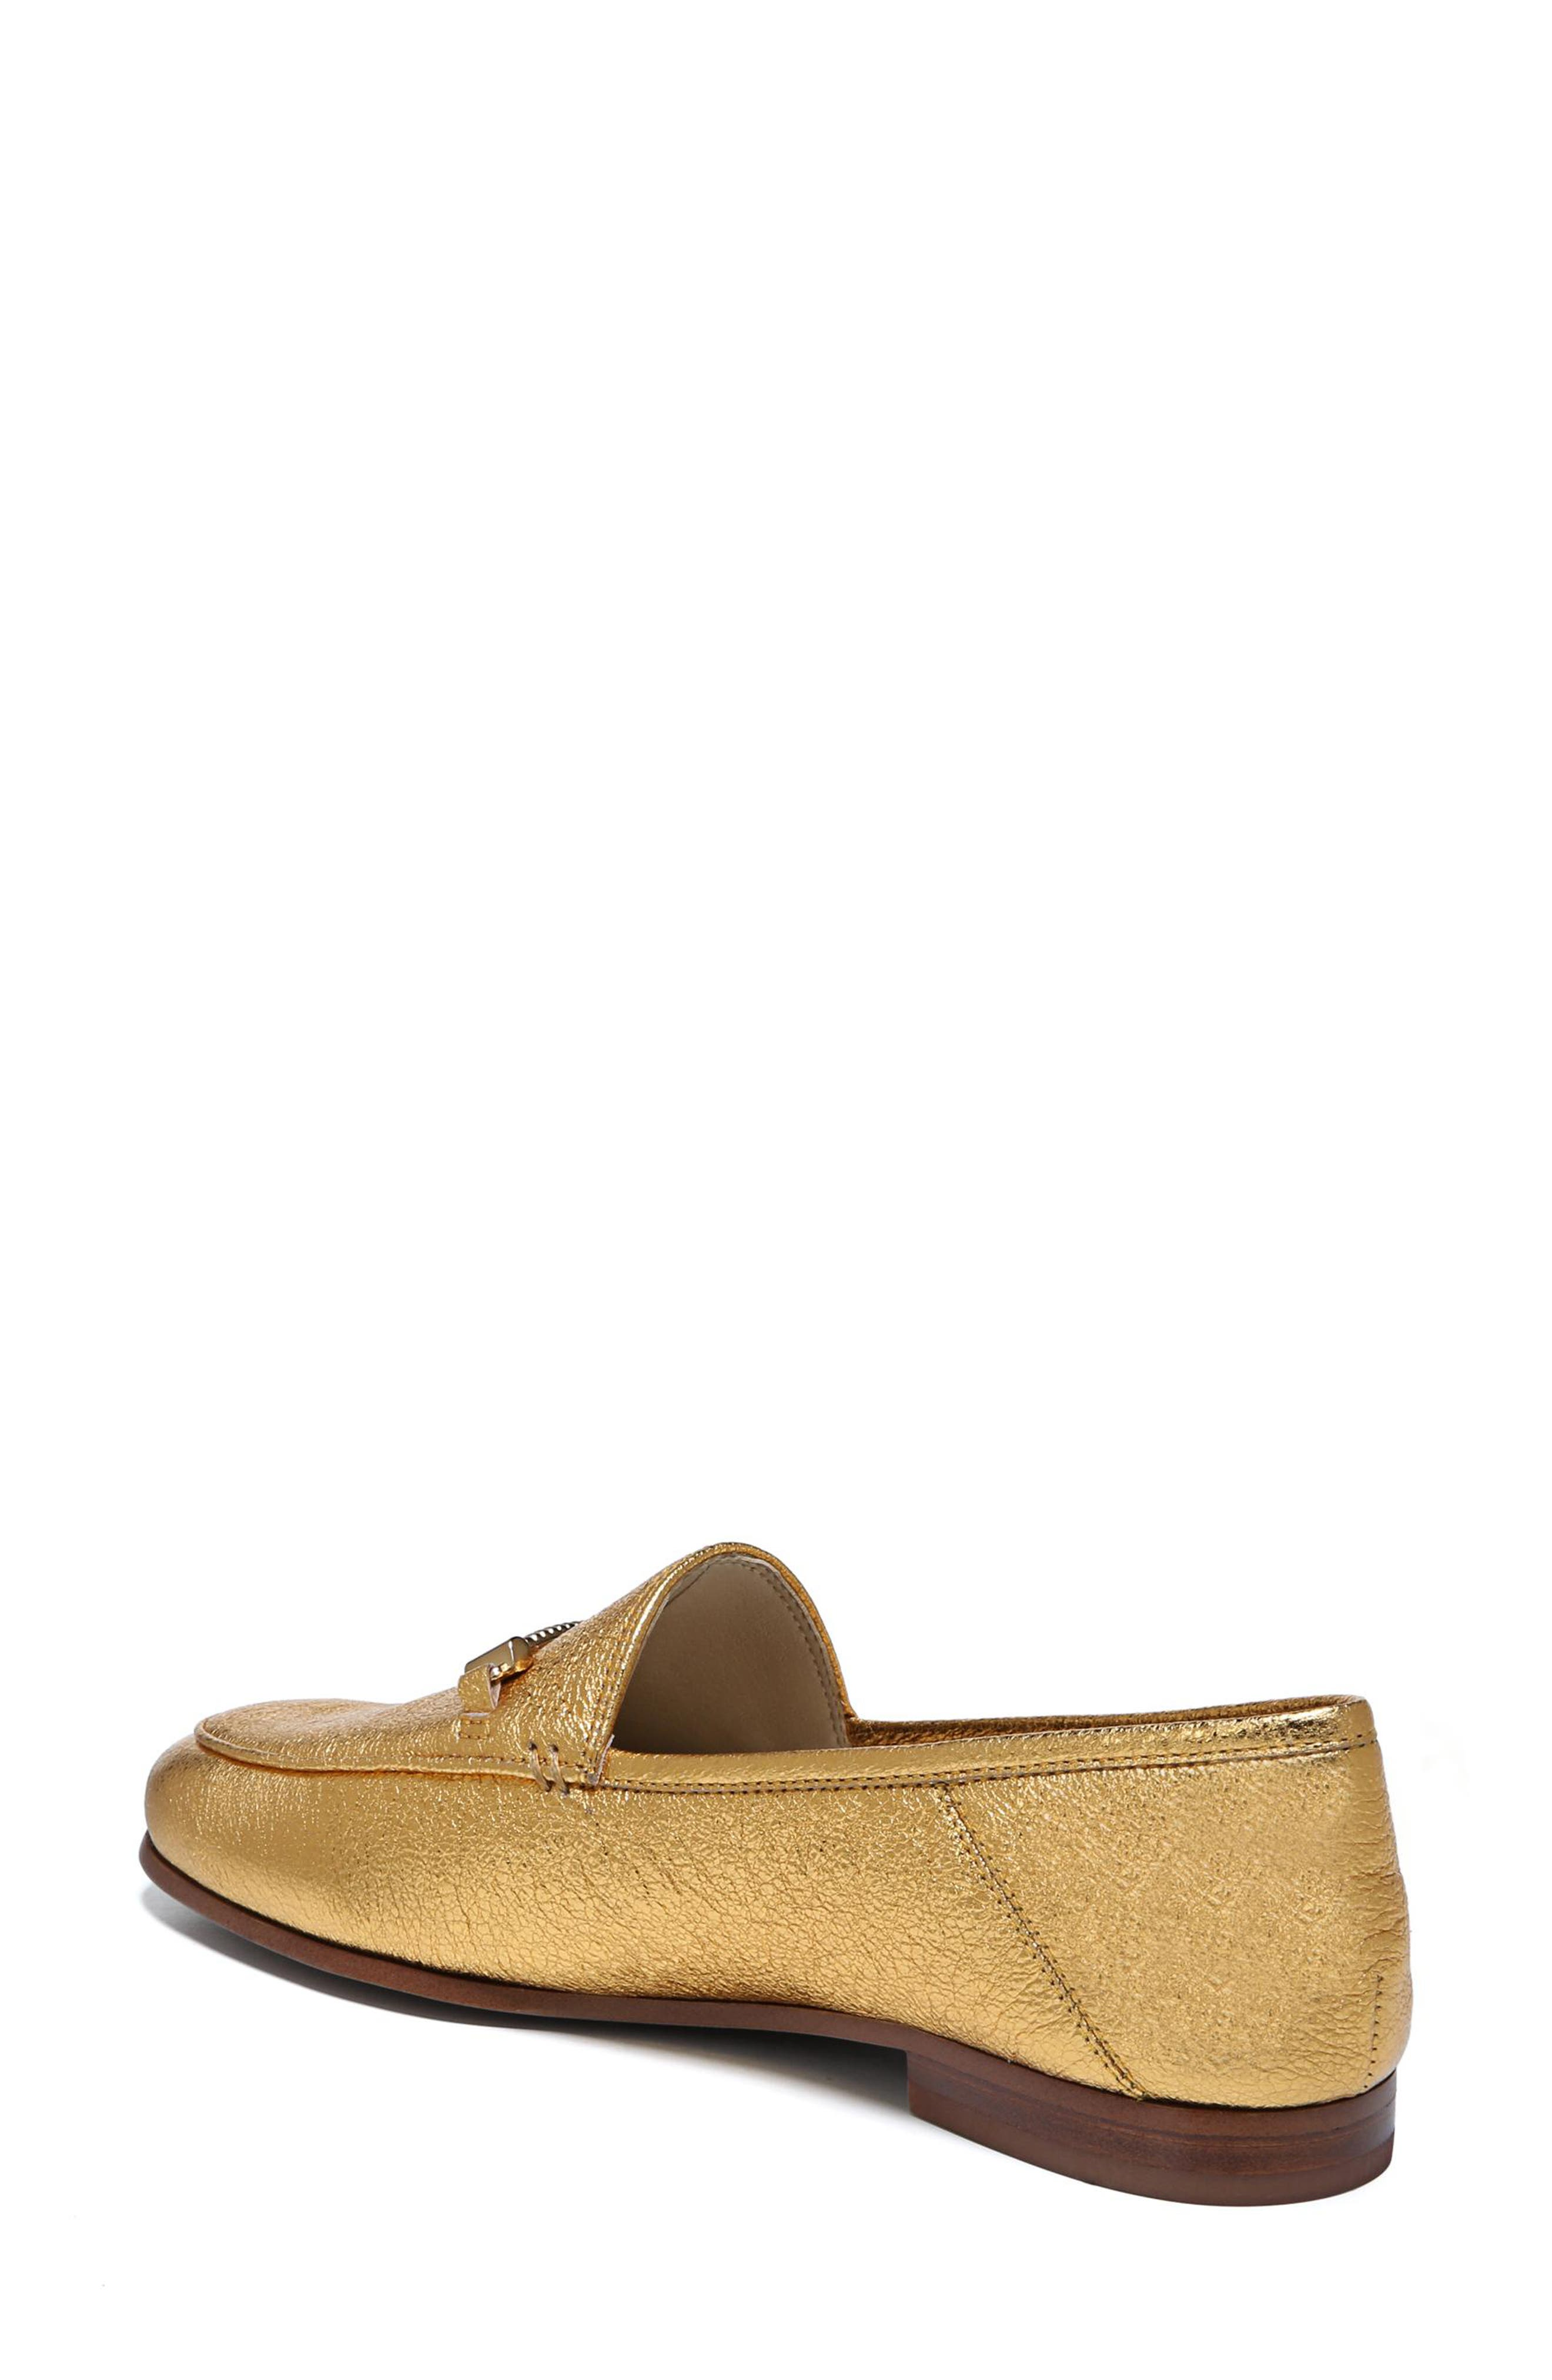 Lior Loafer,                             Alternate thumbnail 2, color,                             Exotic Gold Leather